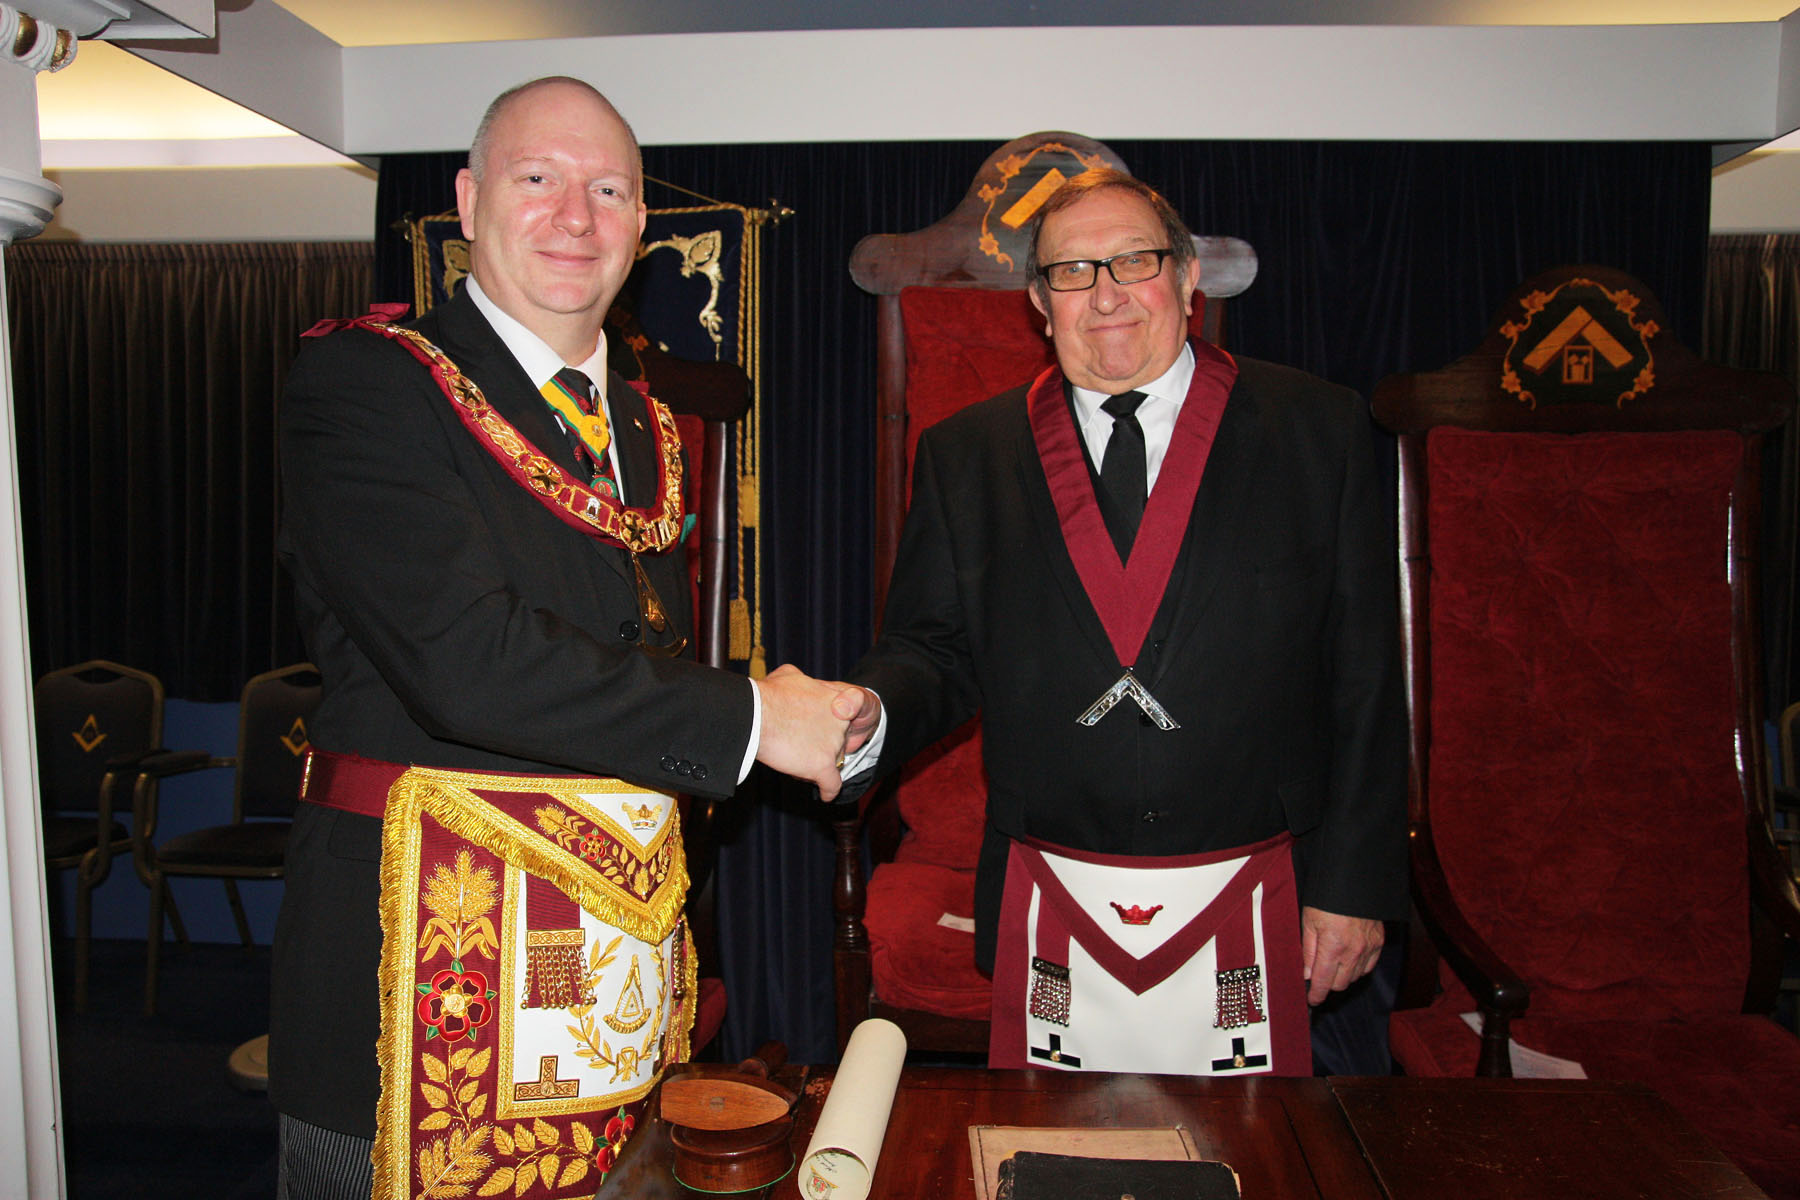 PConsecration of the Court of Wiht-Land No. 123